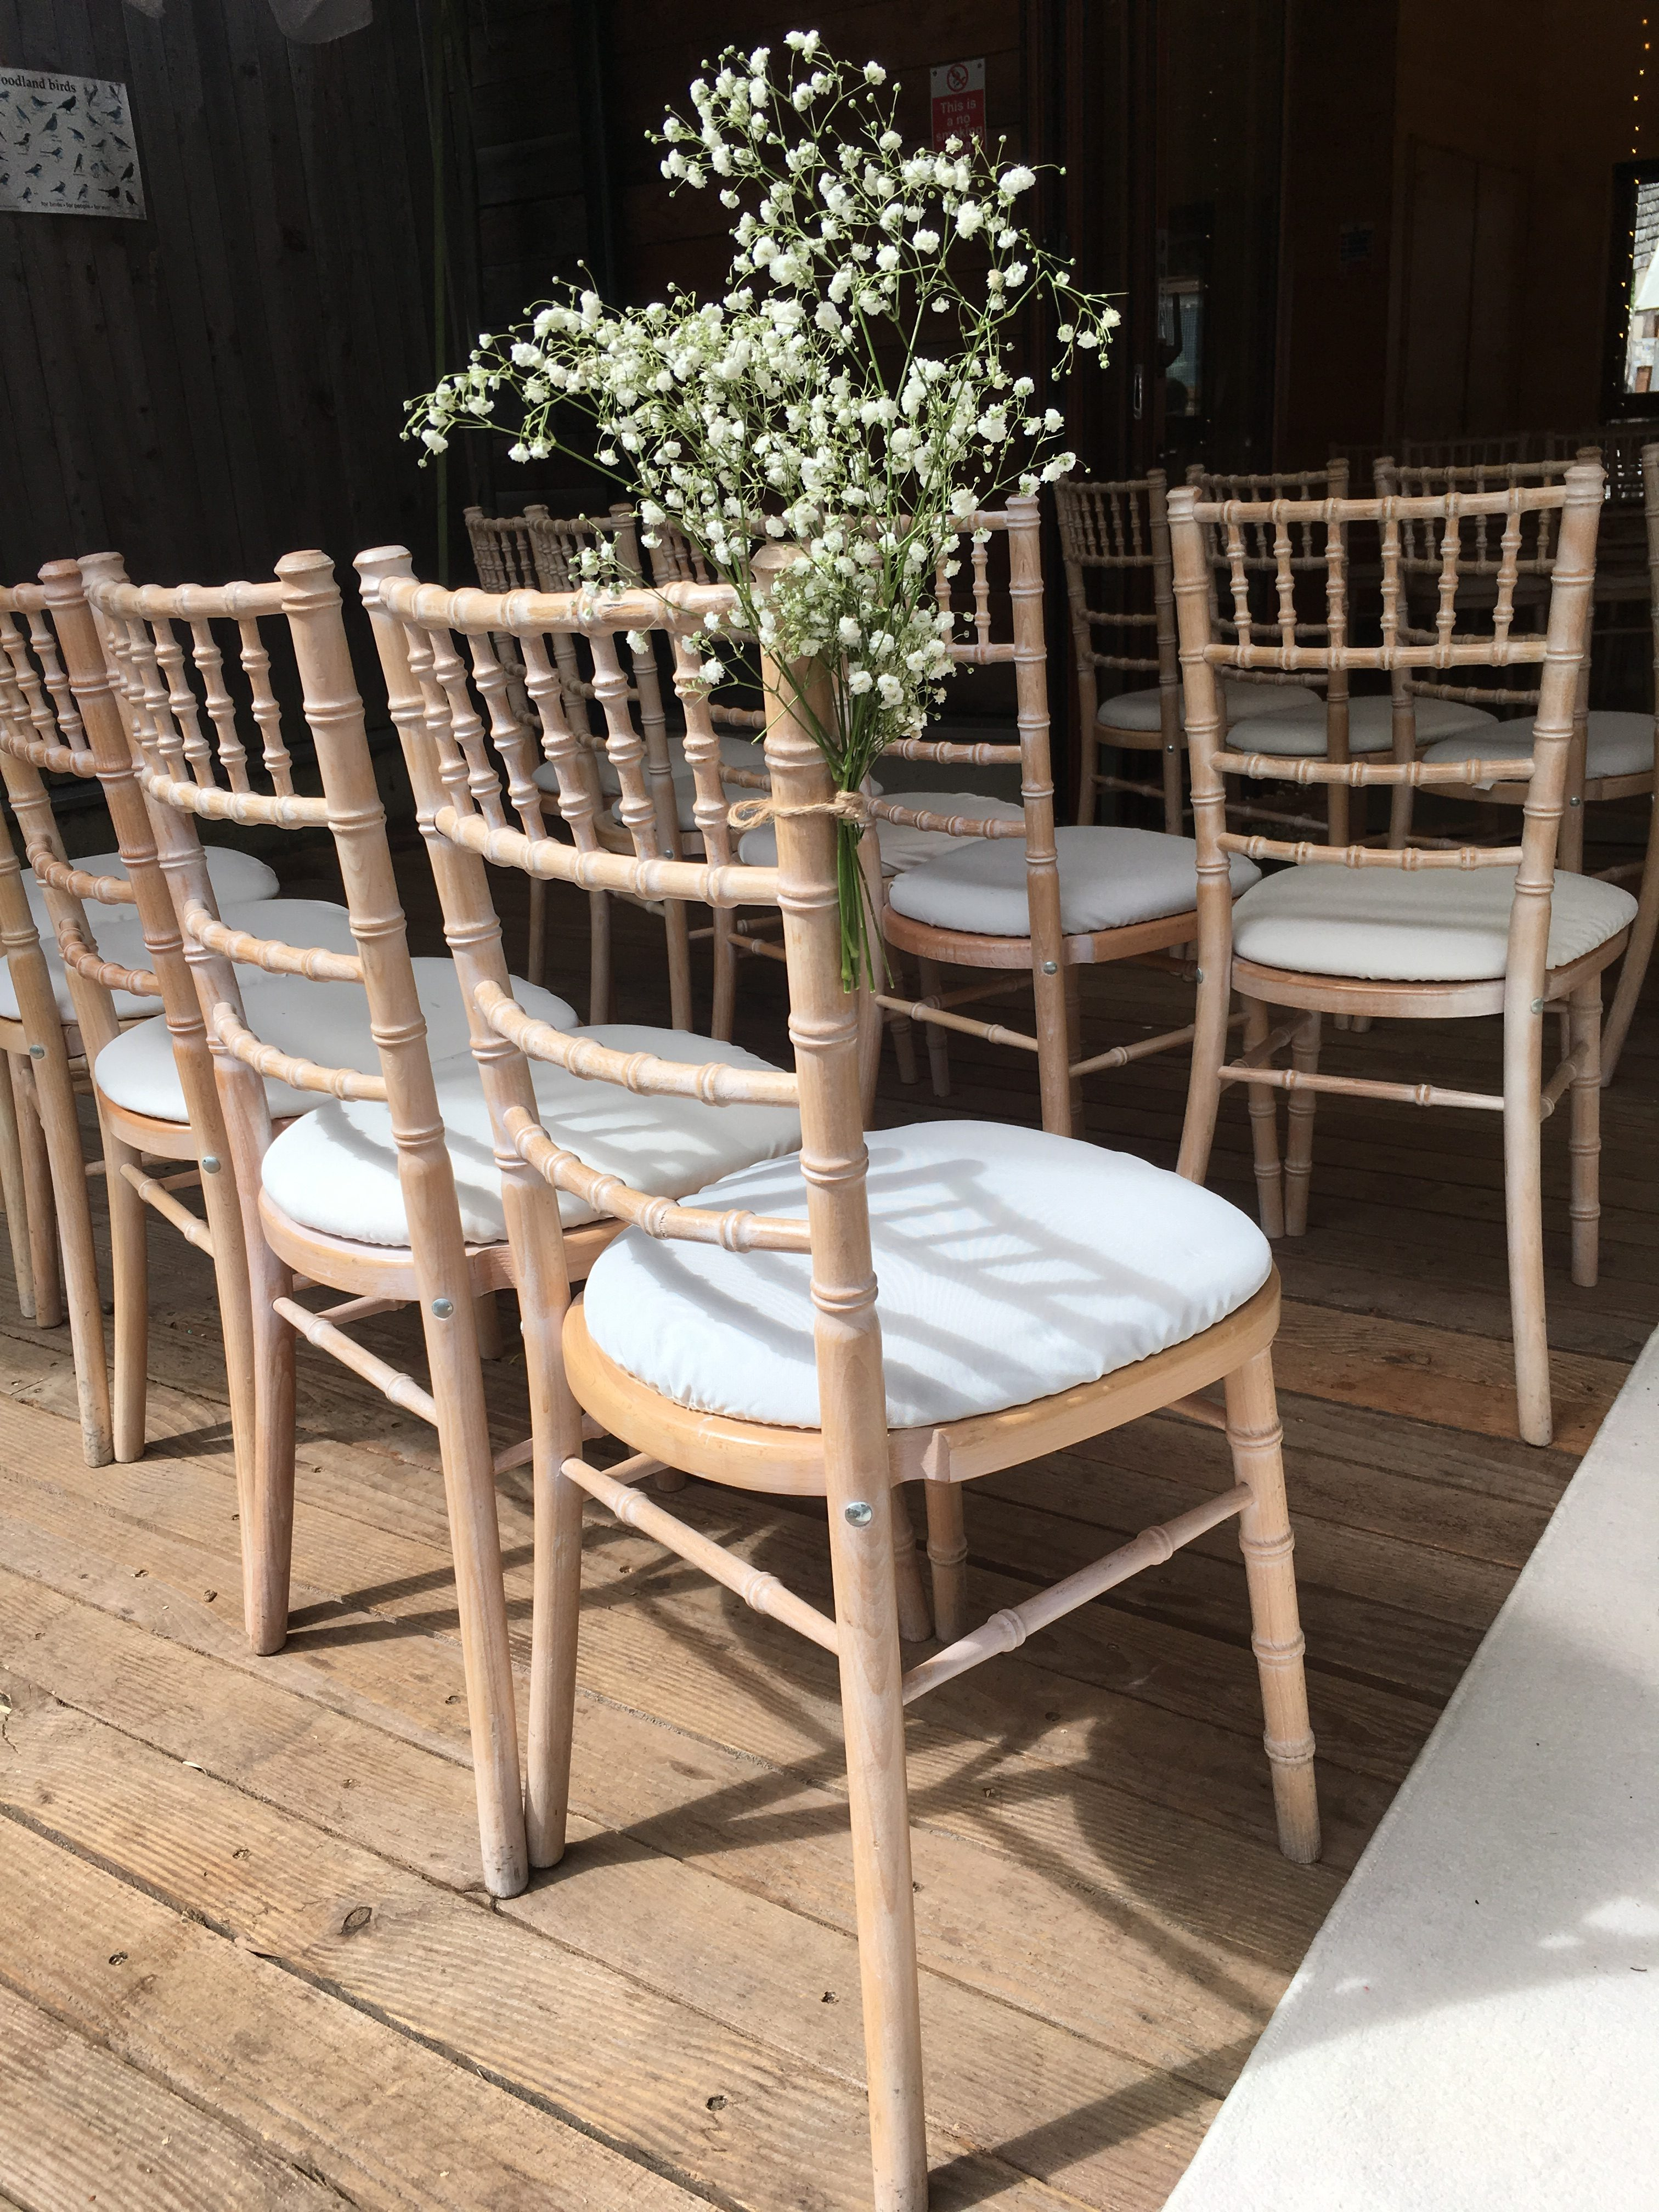 Cream Limewash Chiavari Chairs with Gypsophilla Sophia's Final Touch - Venue Styling - Weddings